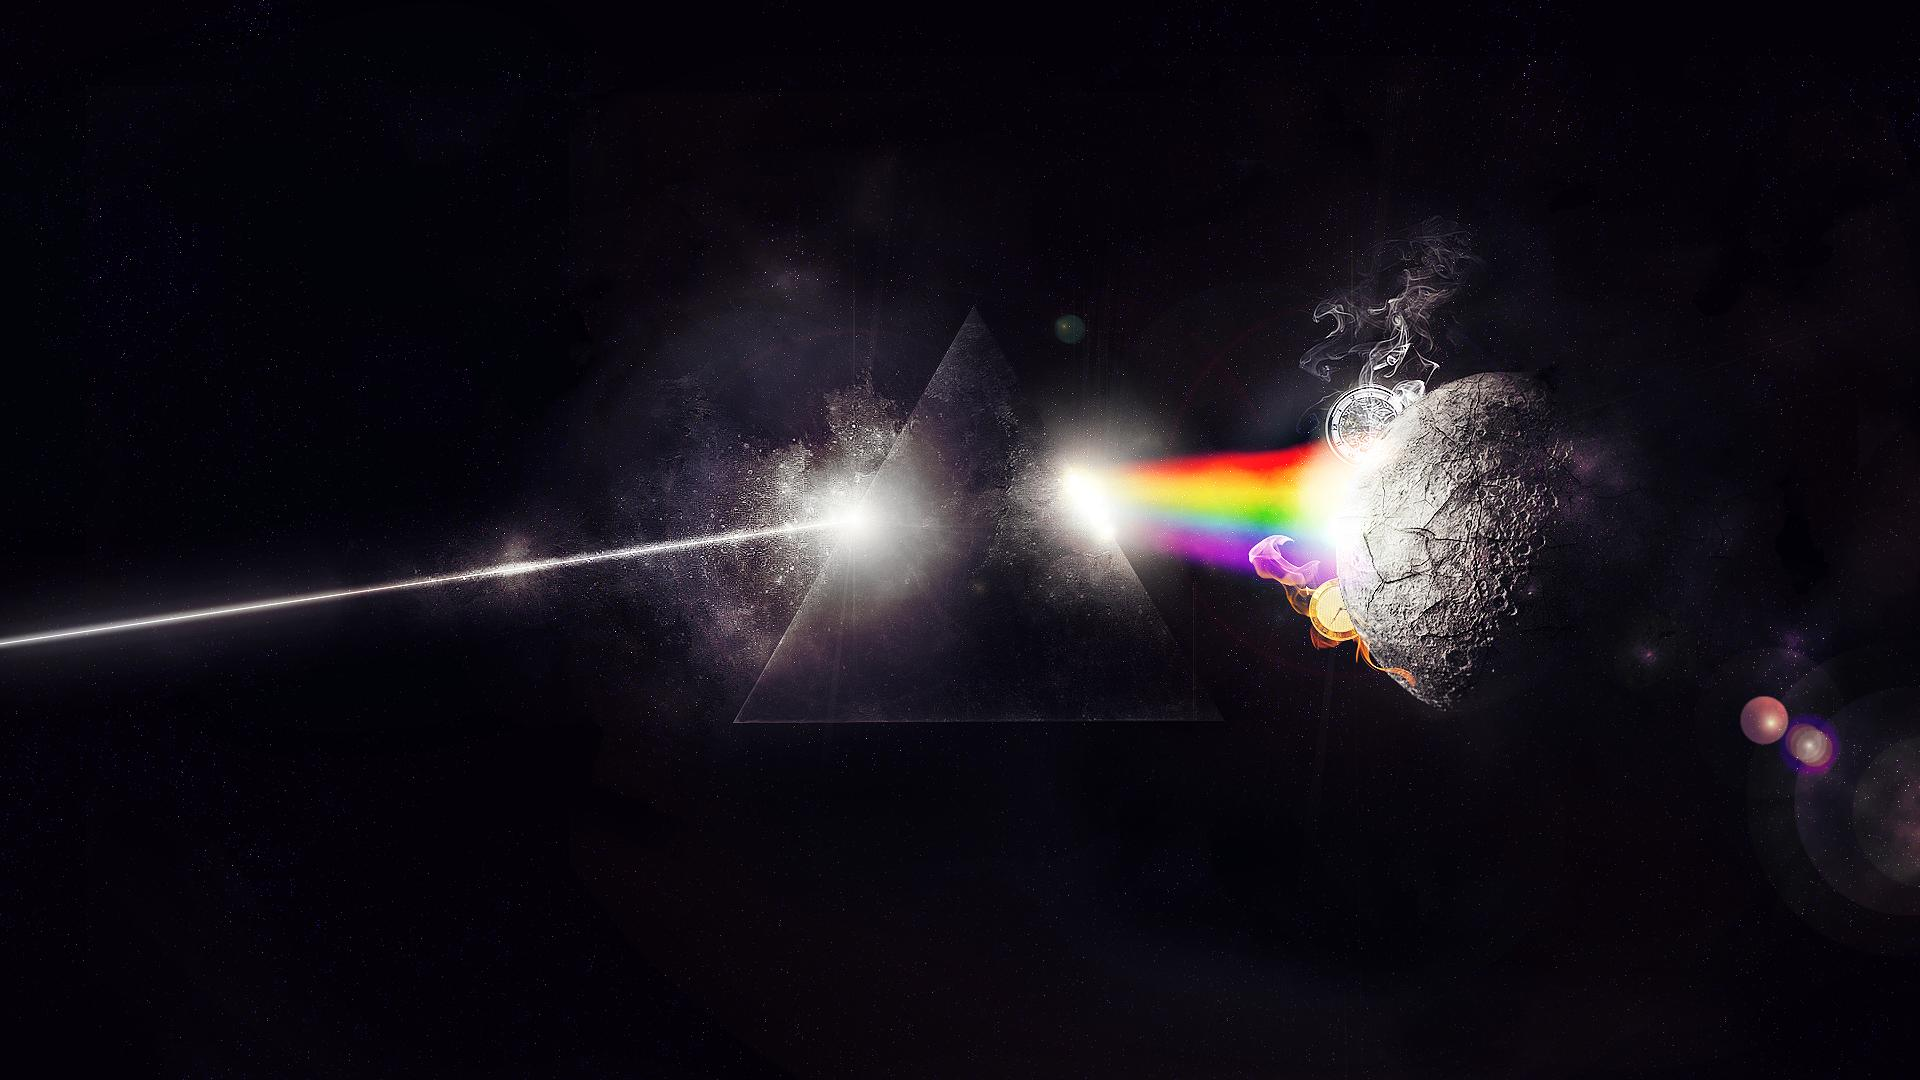 Pink Floyd - The Dark Side of the Moon - HD Wallpapers Image | HD ...